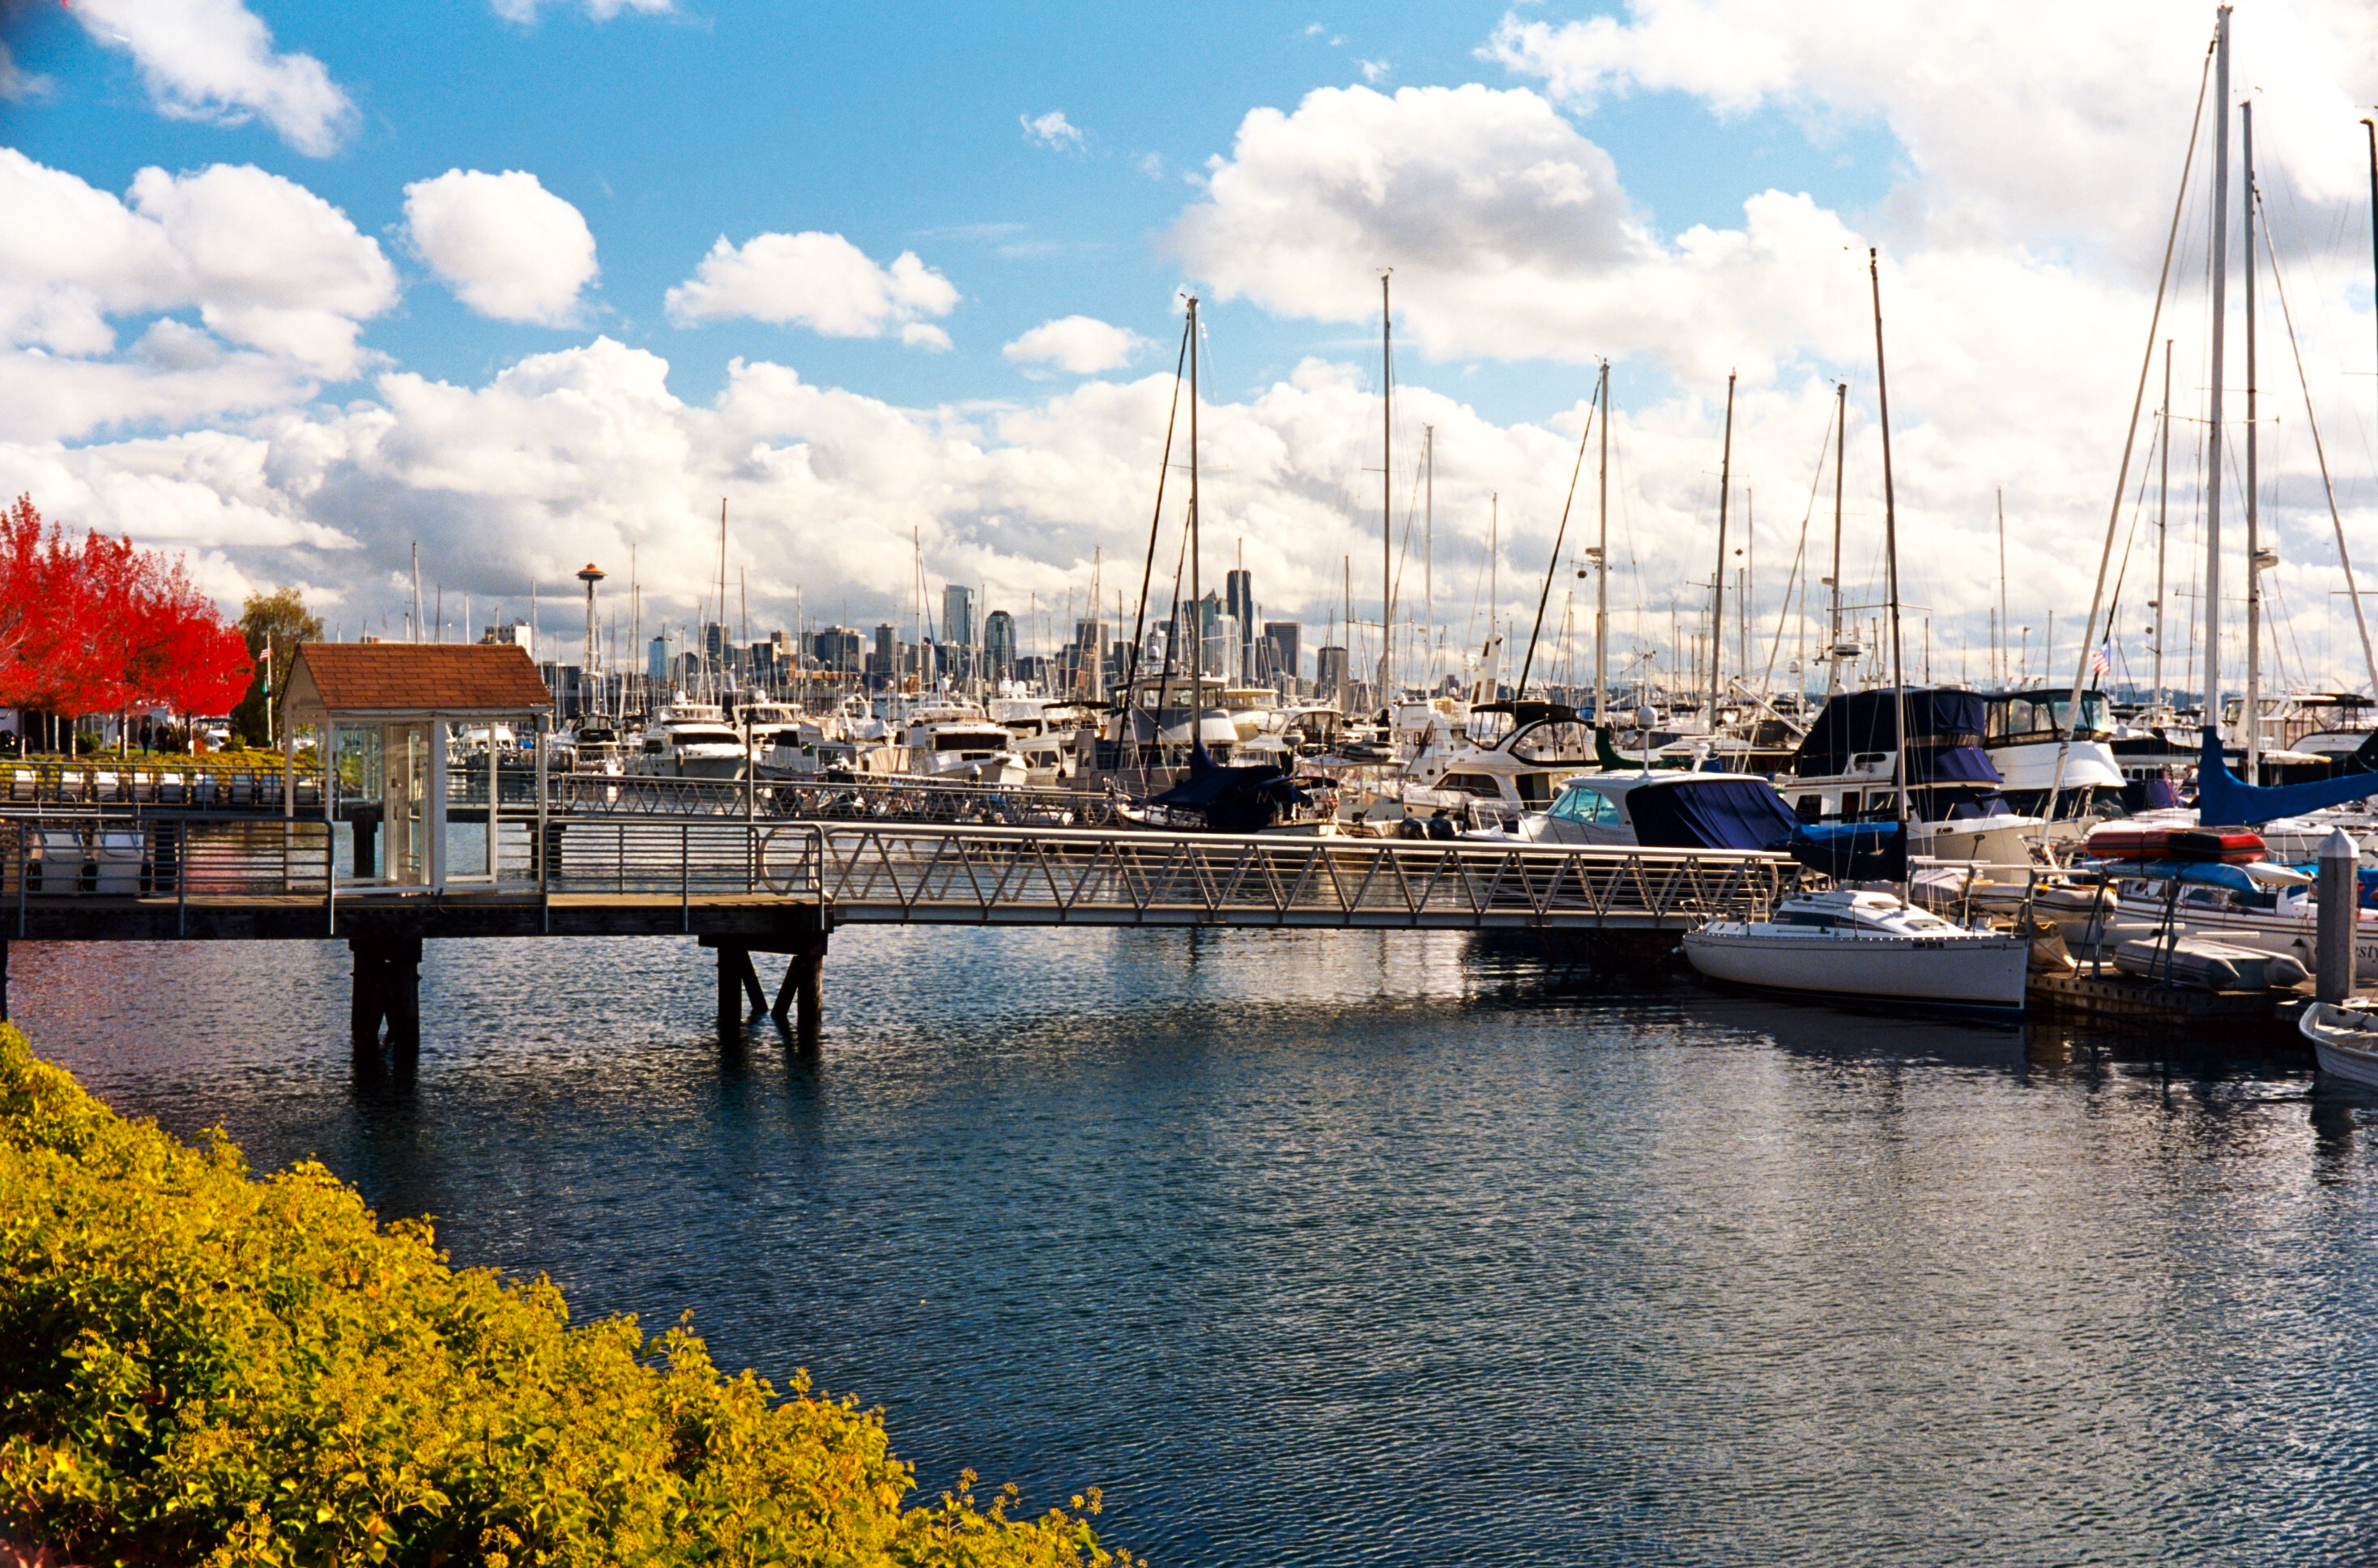 Elliott Bay Marina - Wikipedia